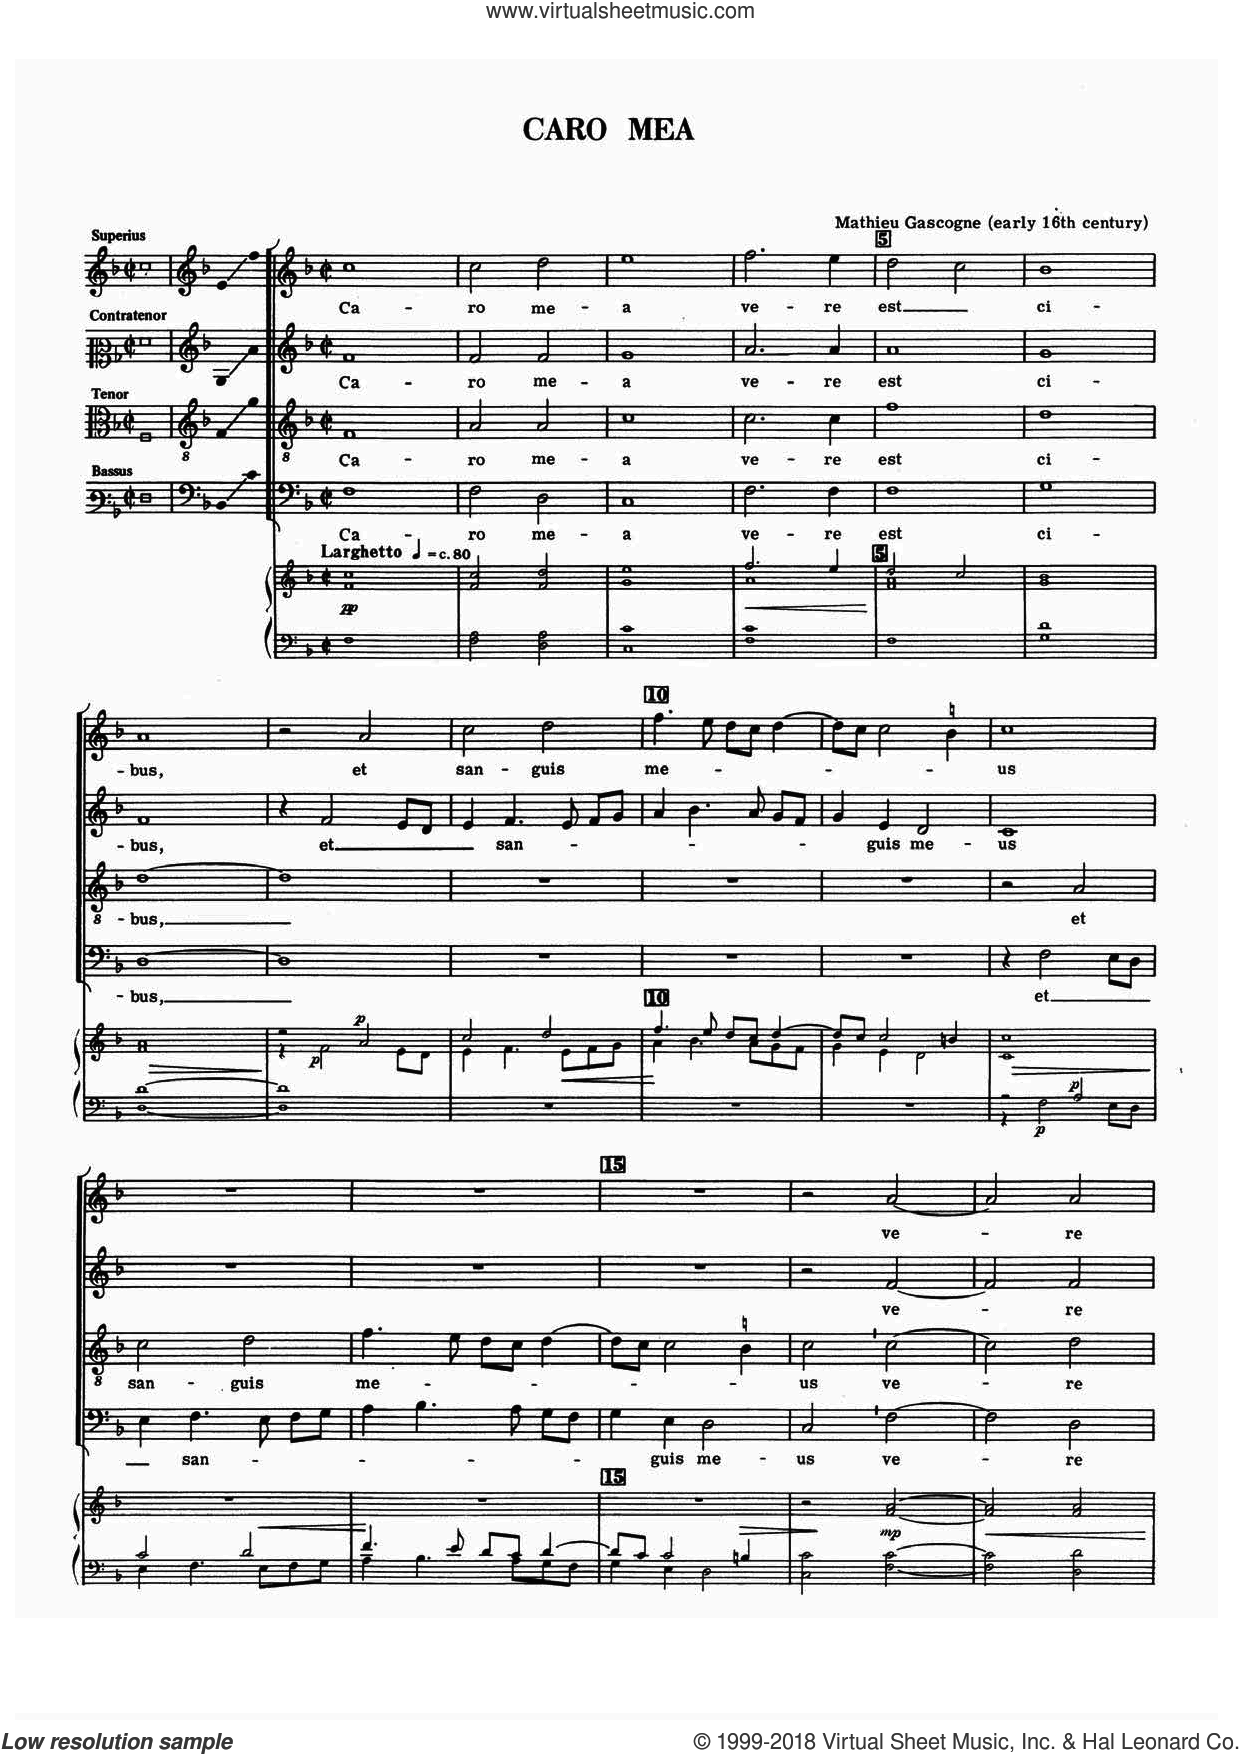 Caro Mea sheet music for choir by Mathieu Gascogne, classical score, intermediate. Score Image Preview.